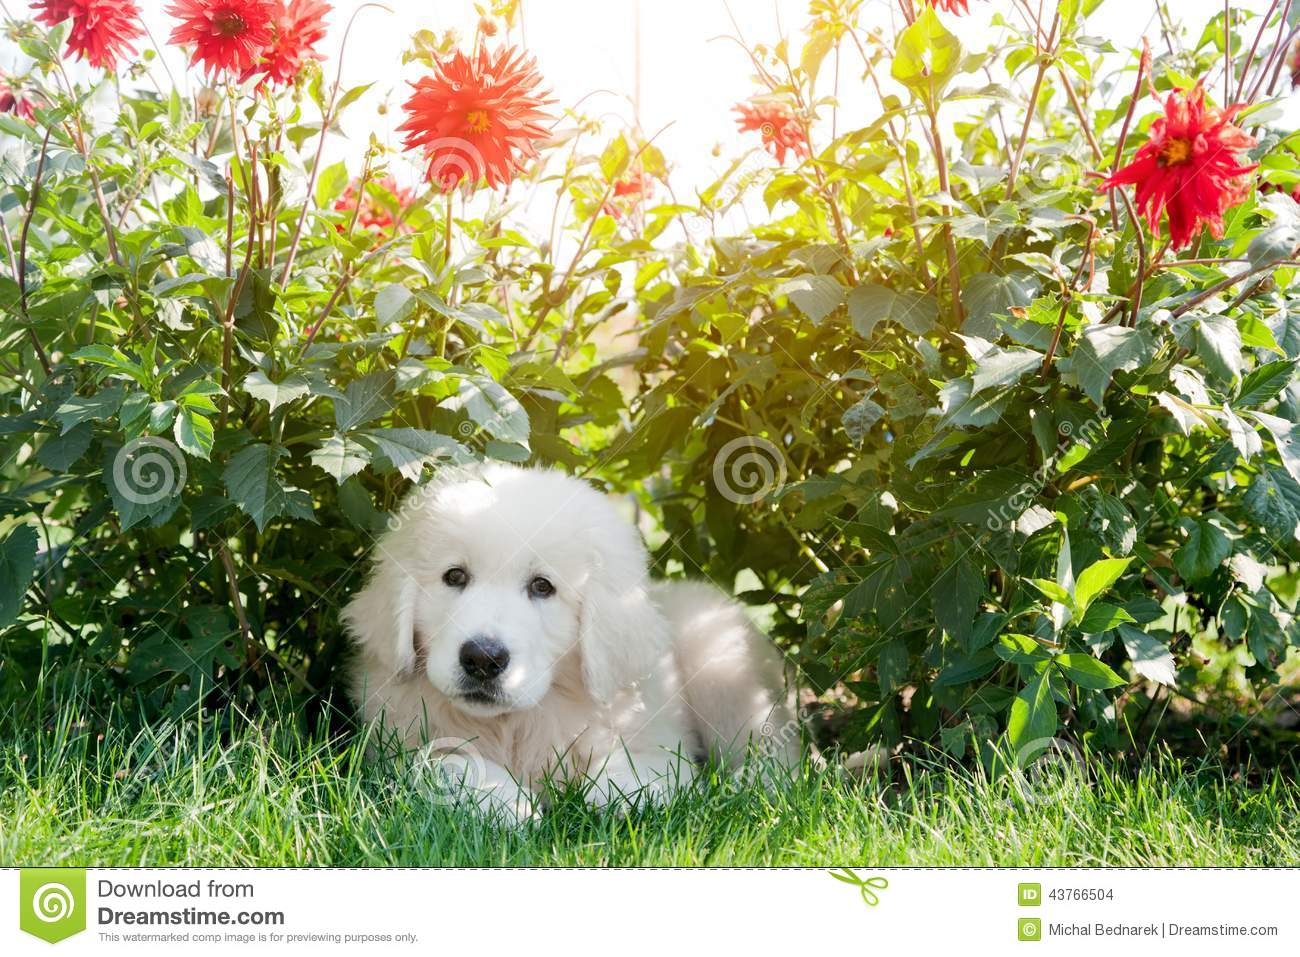 Cute White Puppy Dog Lying Grass In Flowers Stock Image